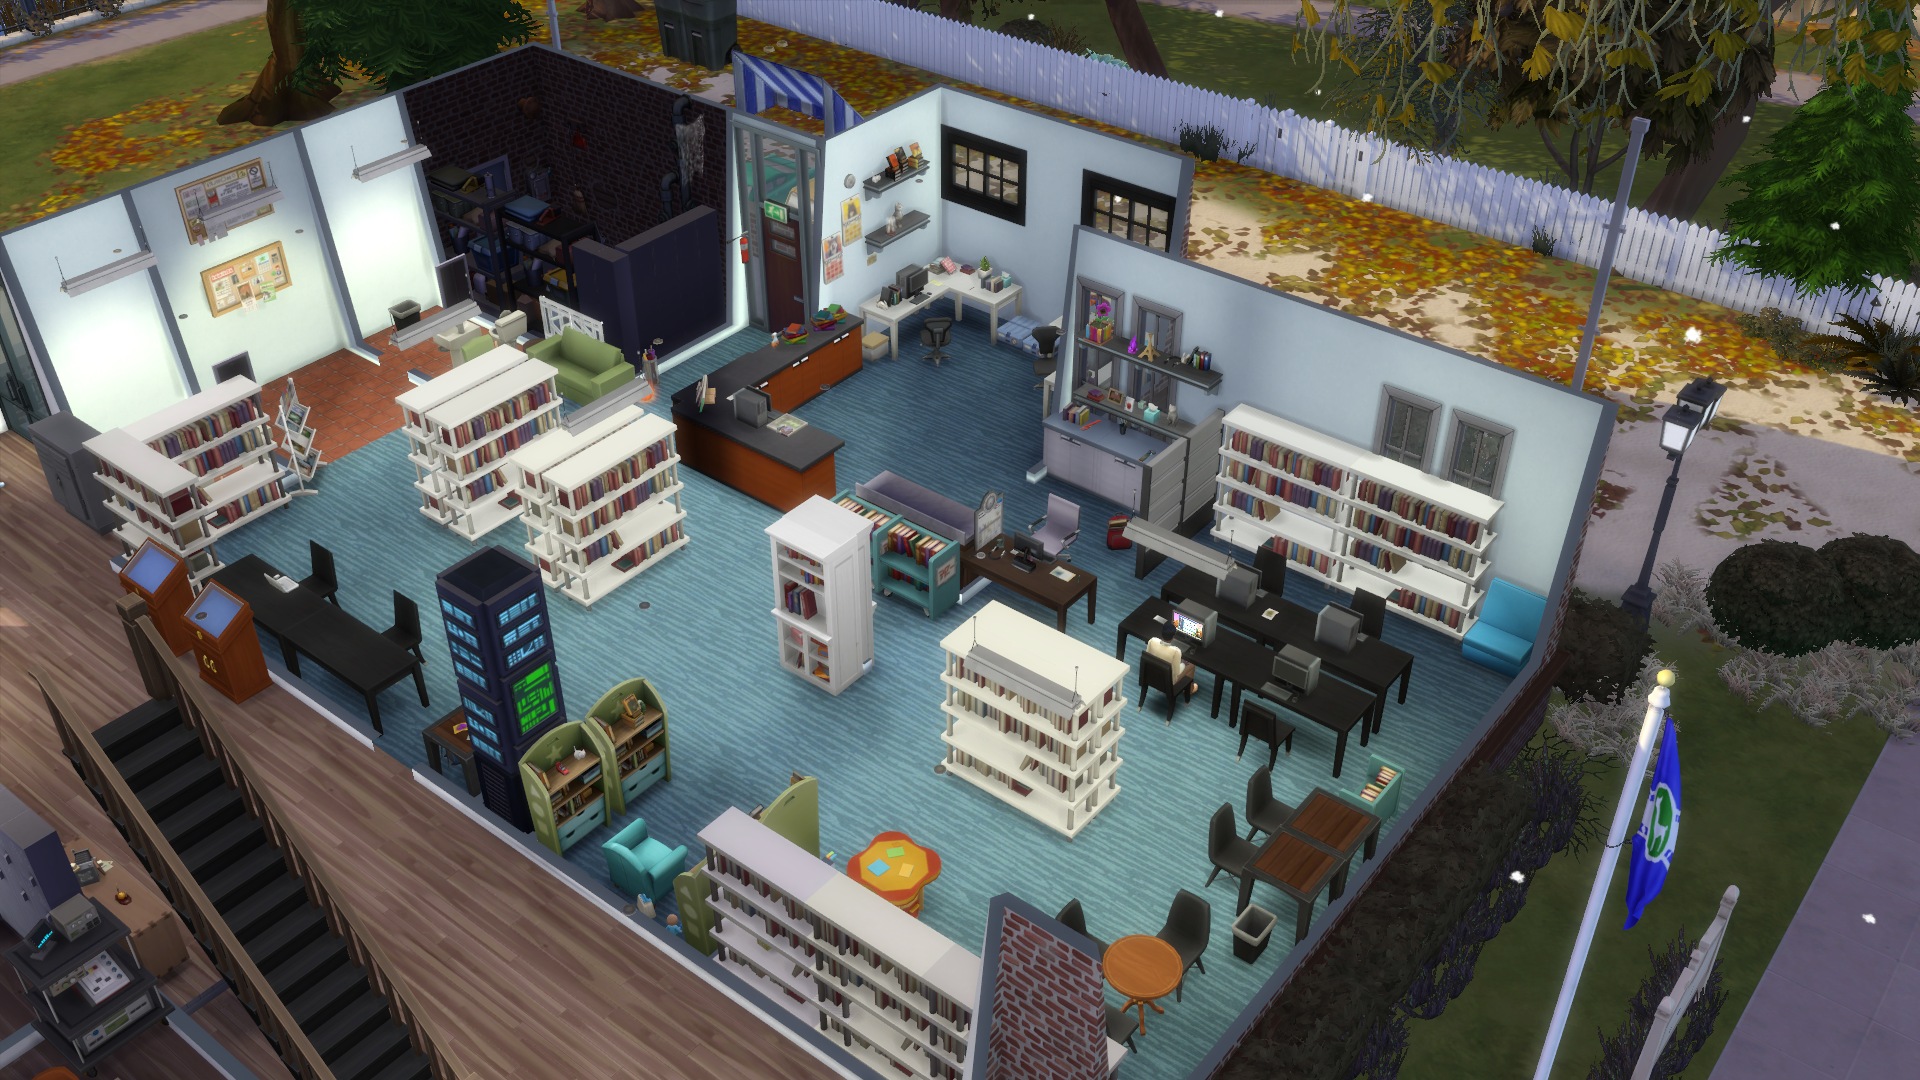 Micanopy Library building inside as made in the Sims 4 game